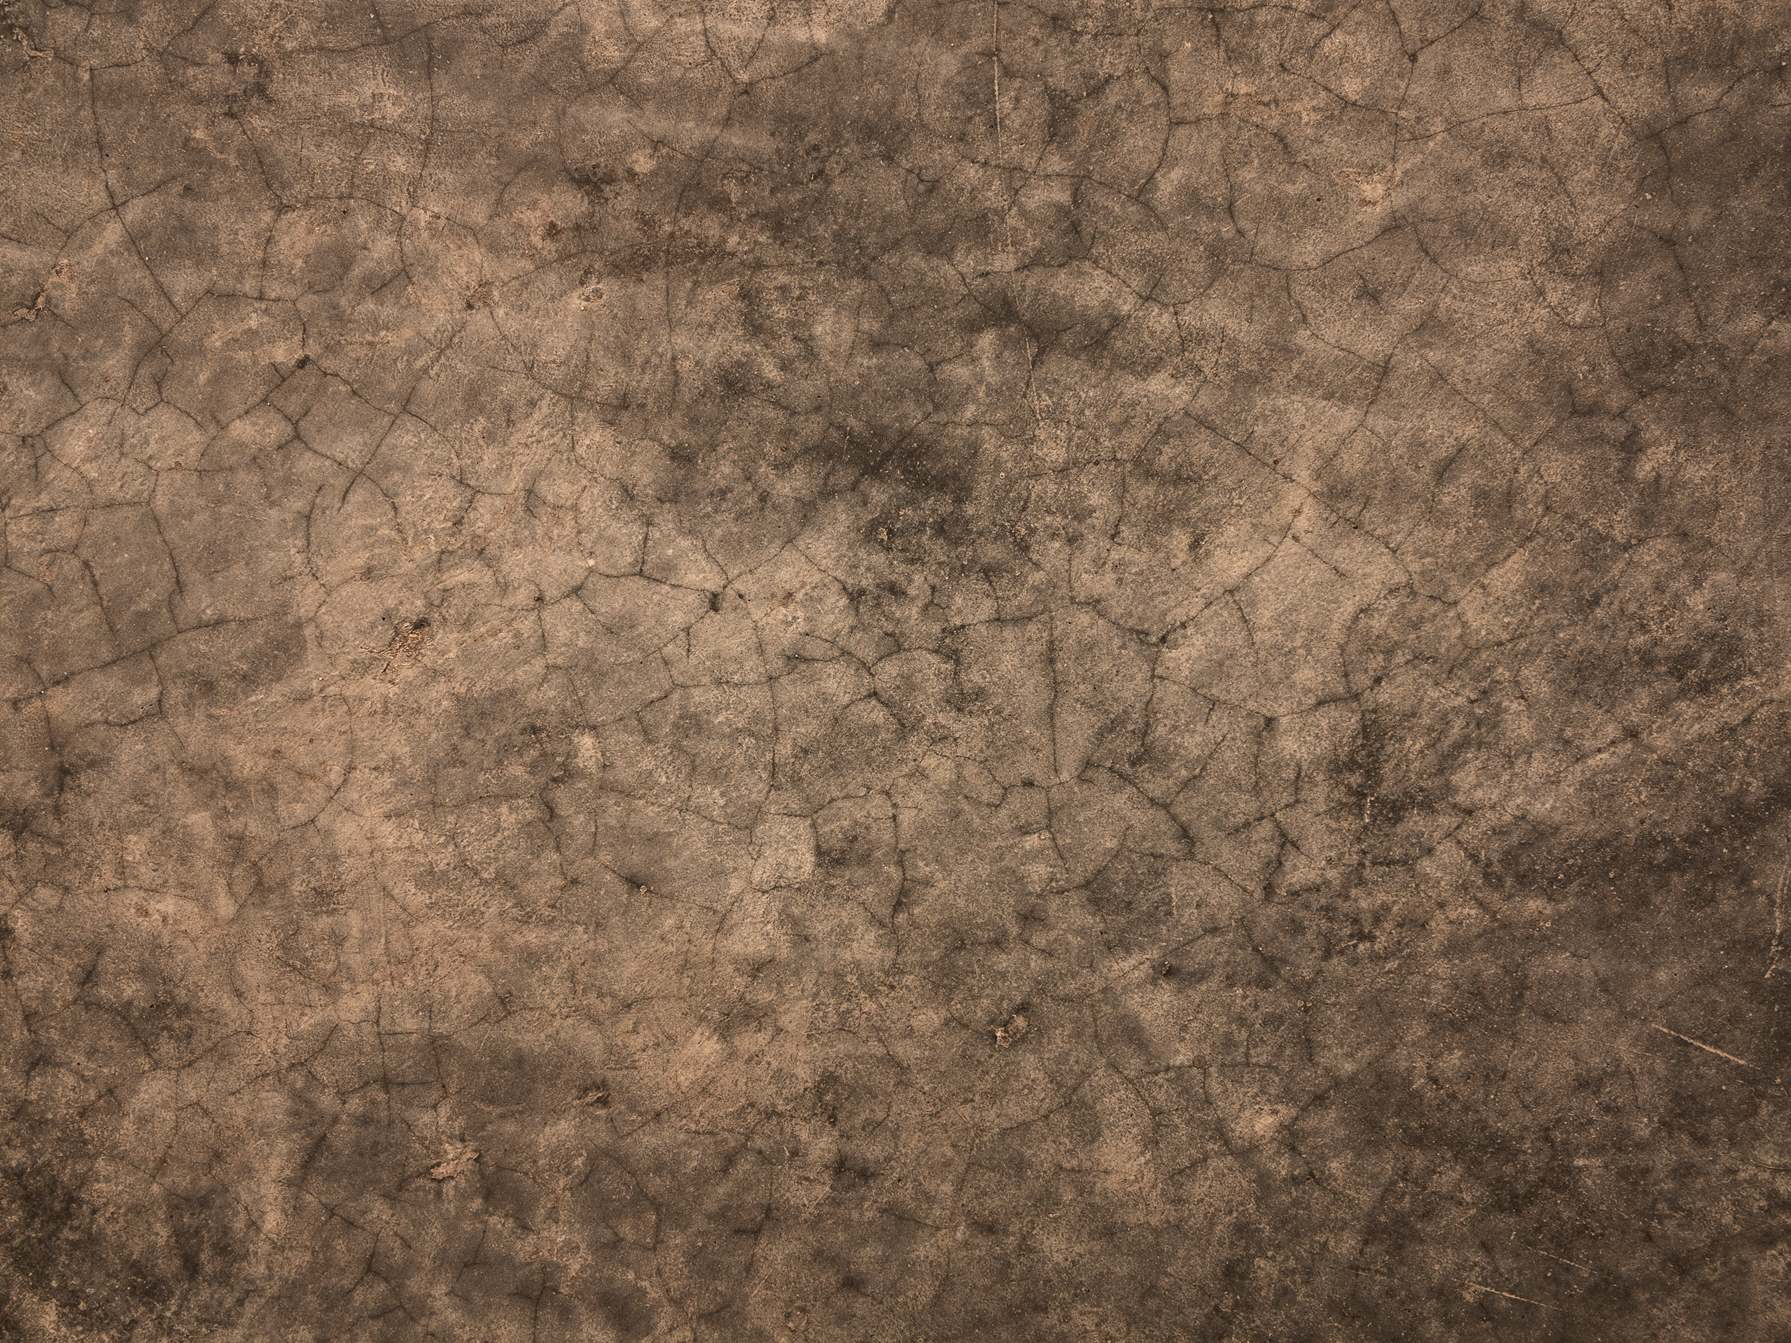 Brown Cracked Concrete Floor Texture Photohdx